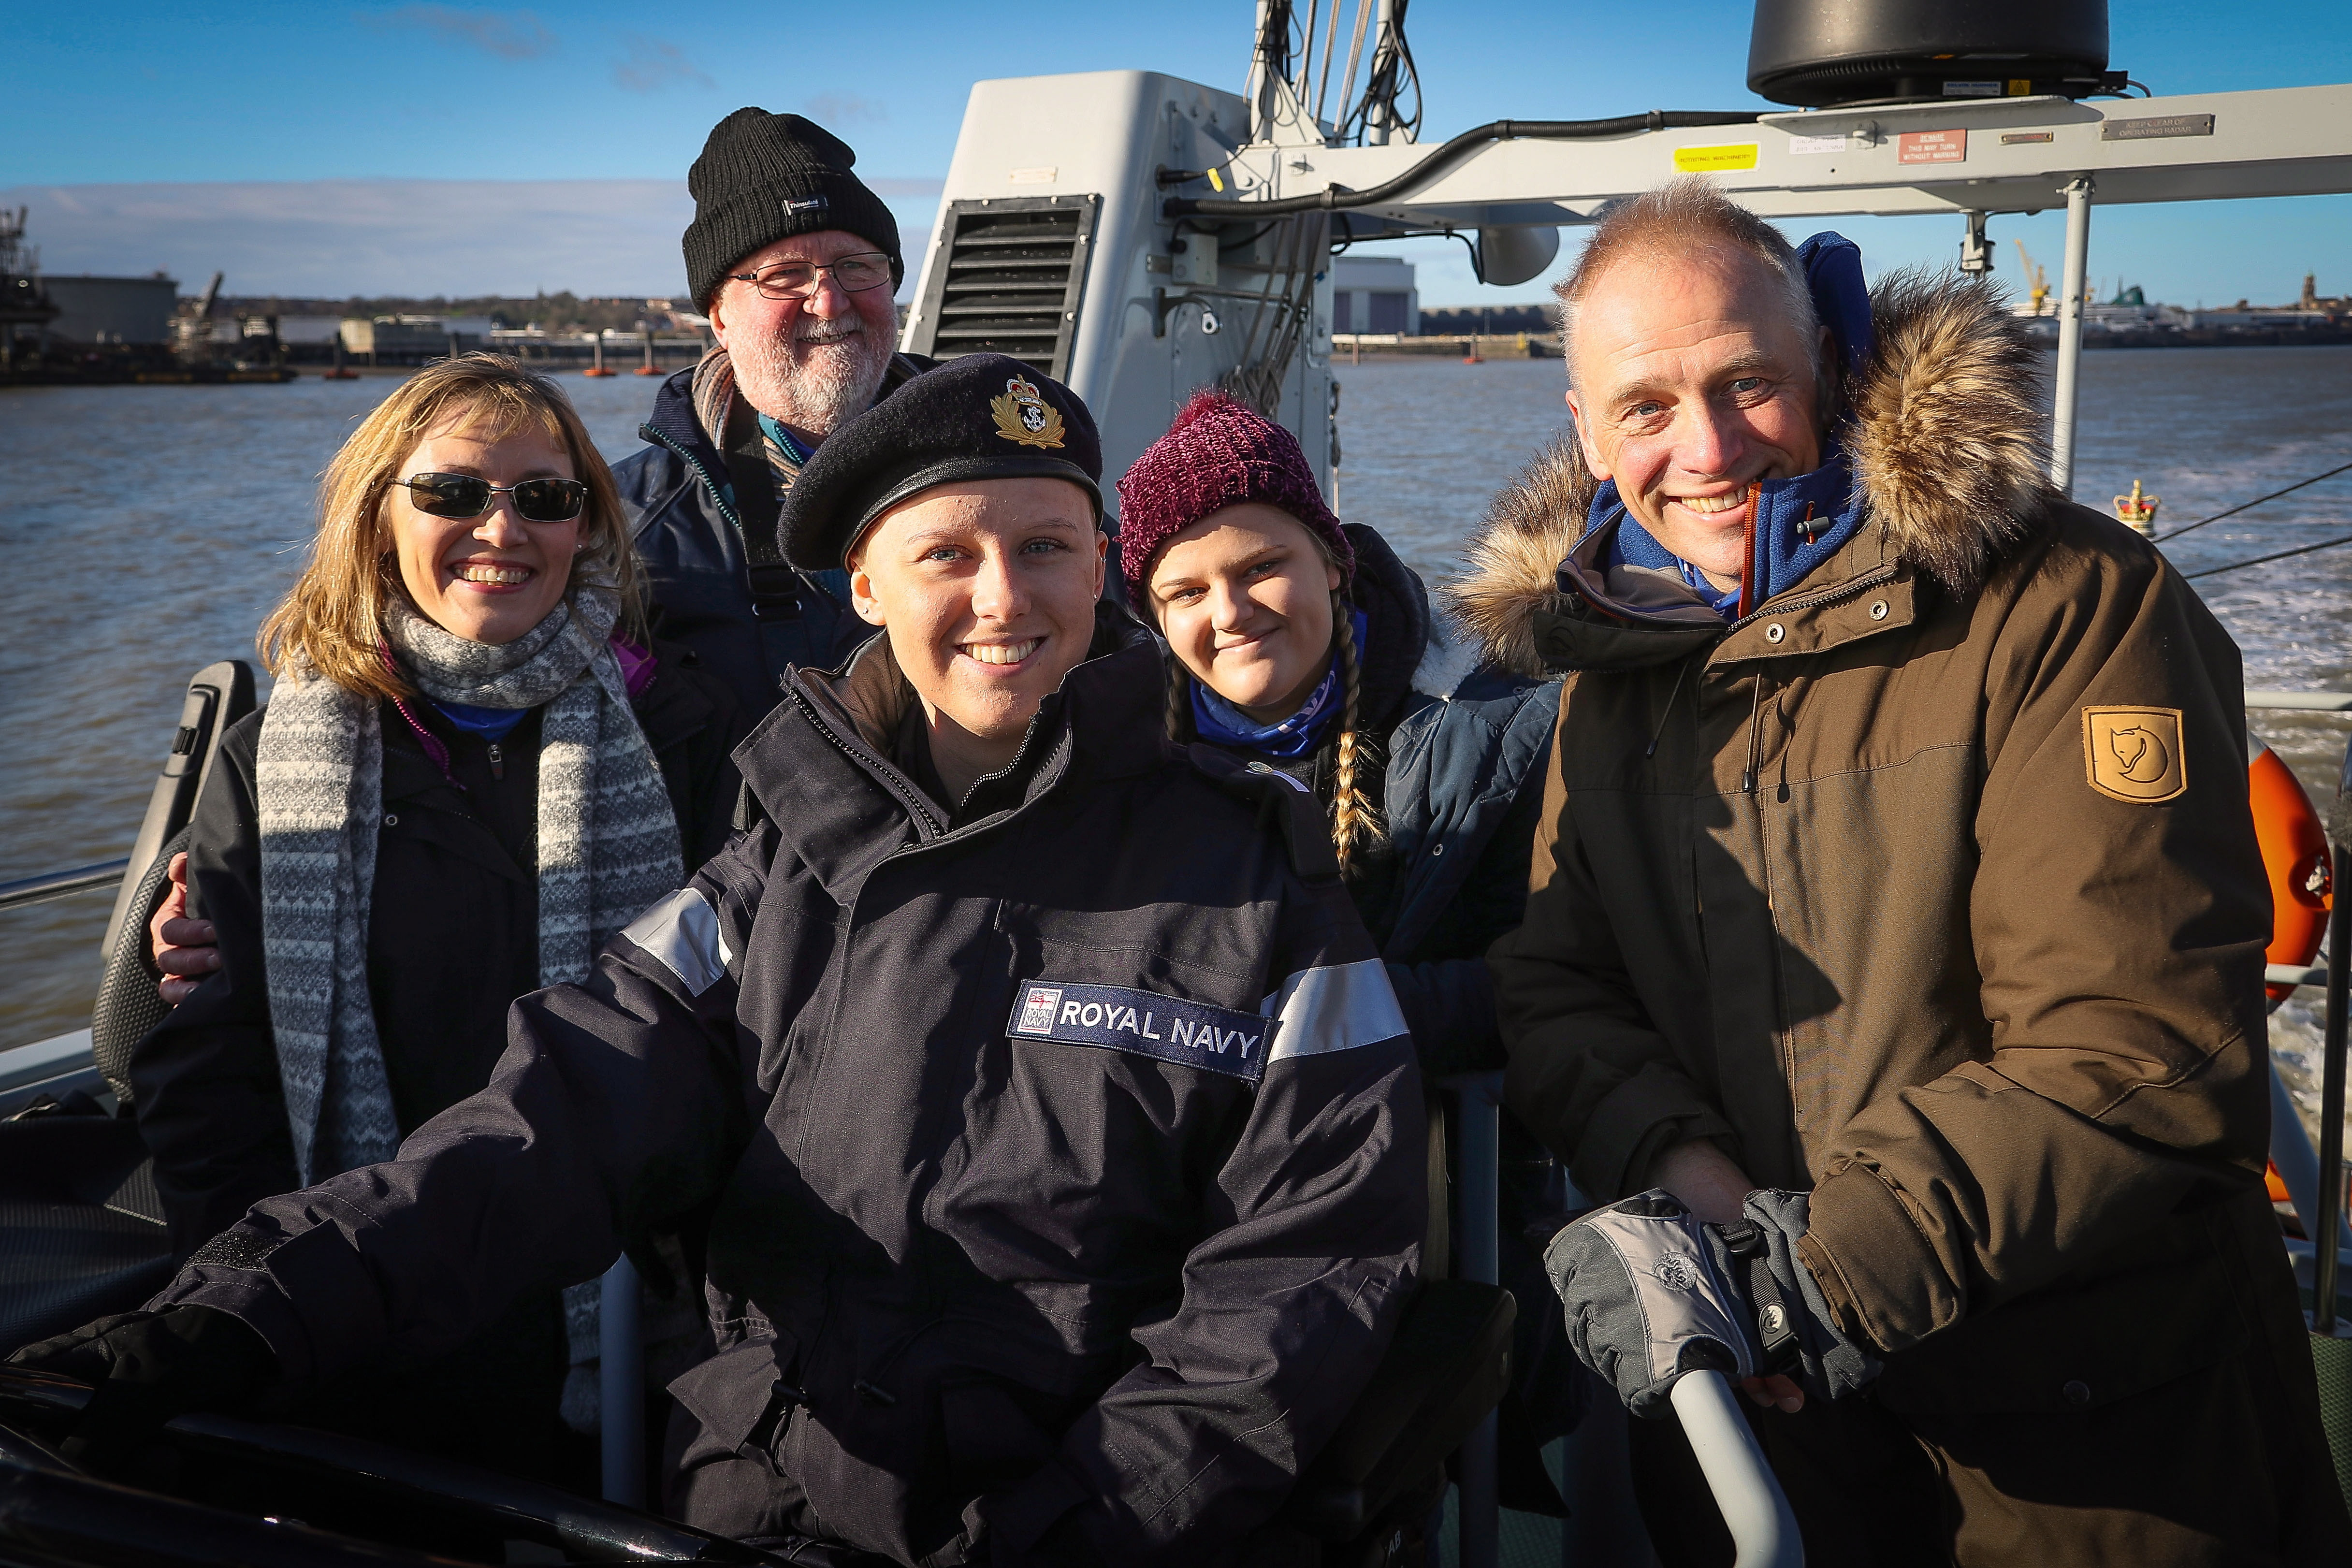 Laura Nuttall and her family on board HMS Charger